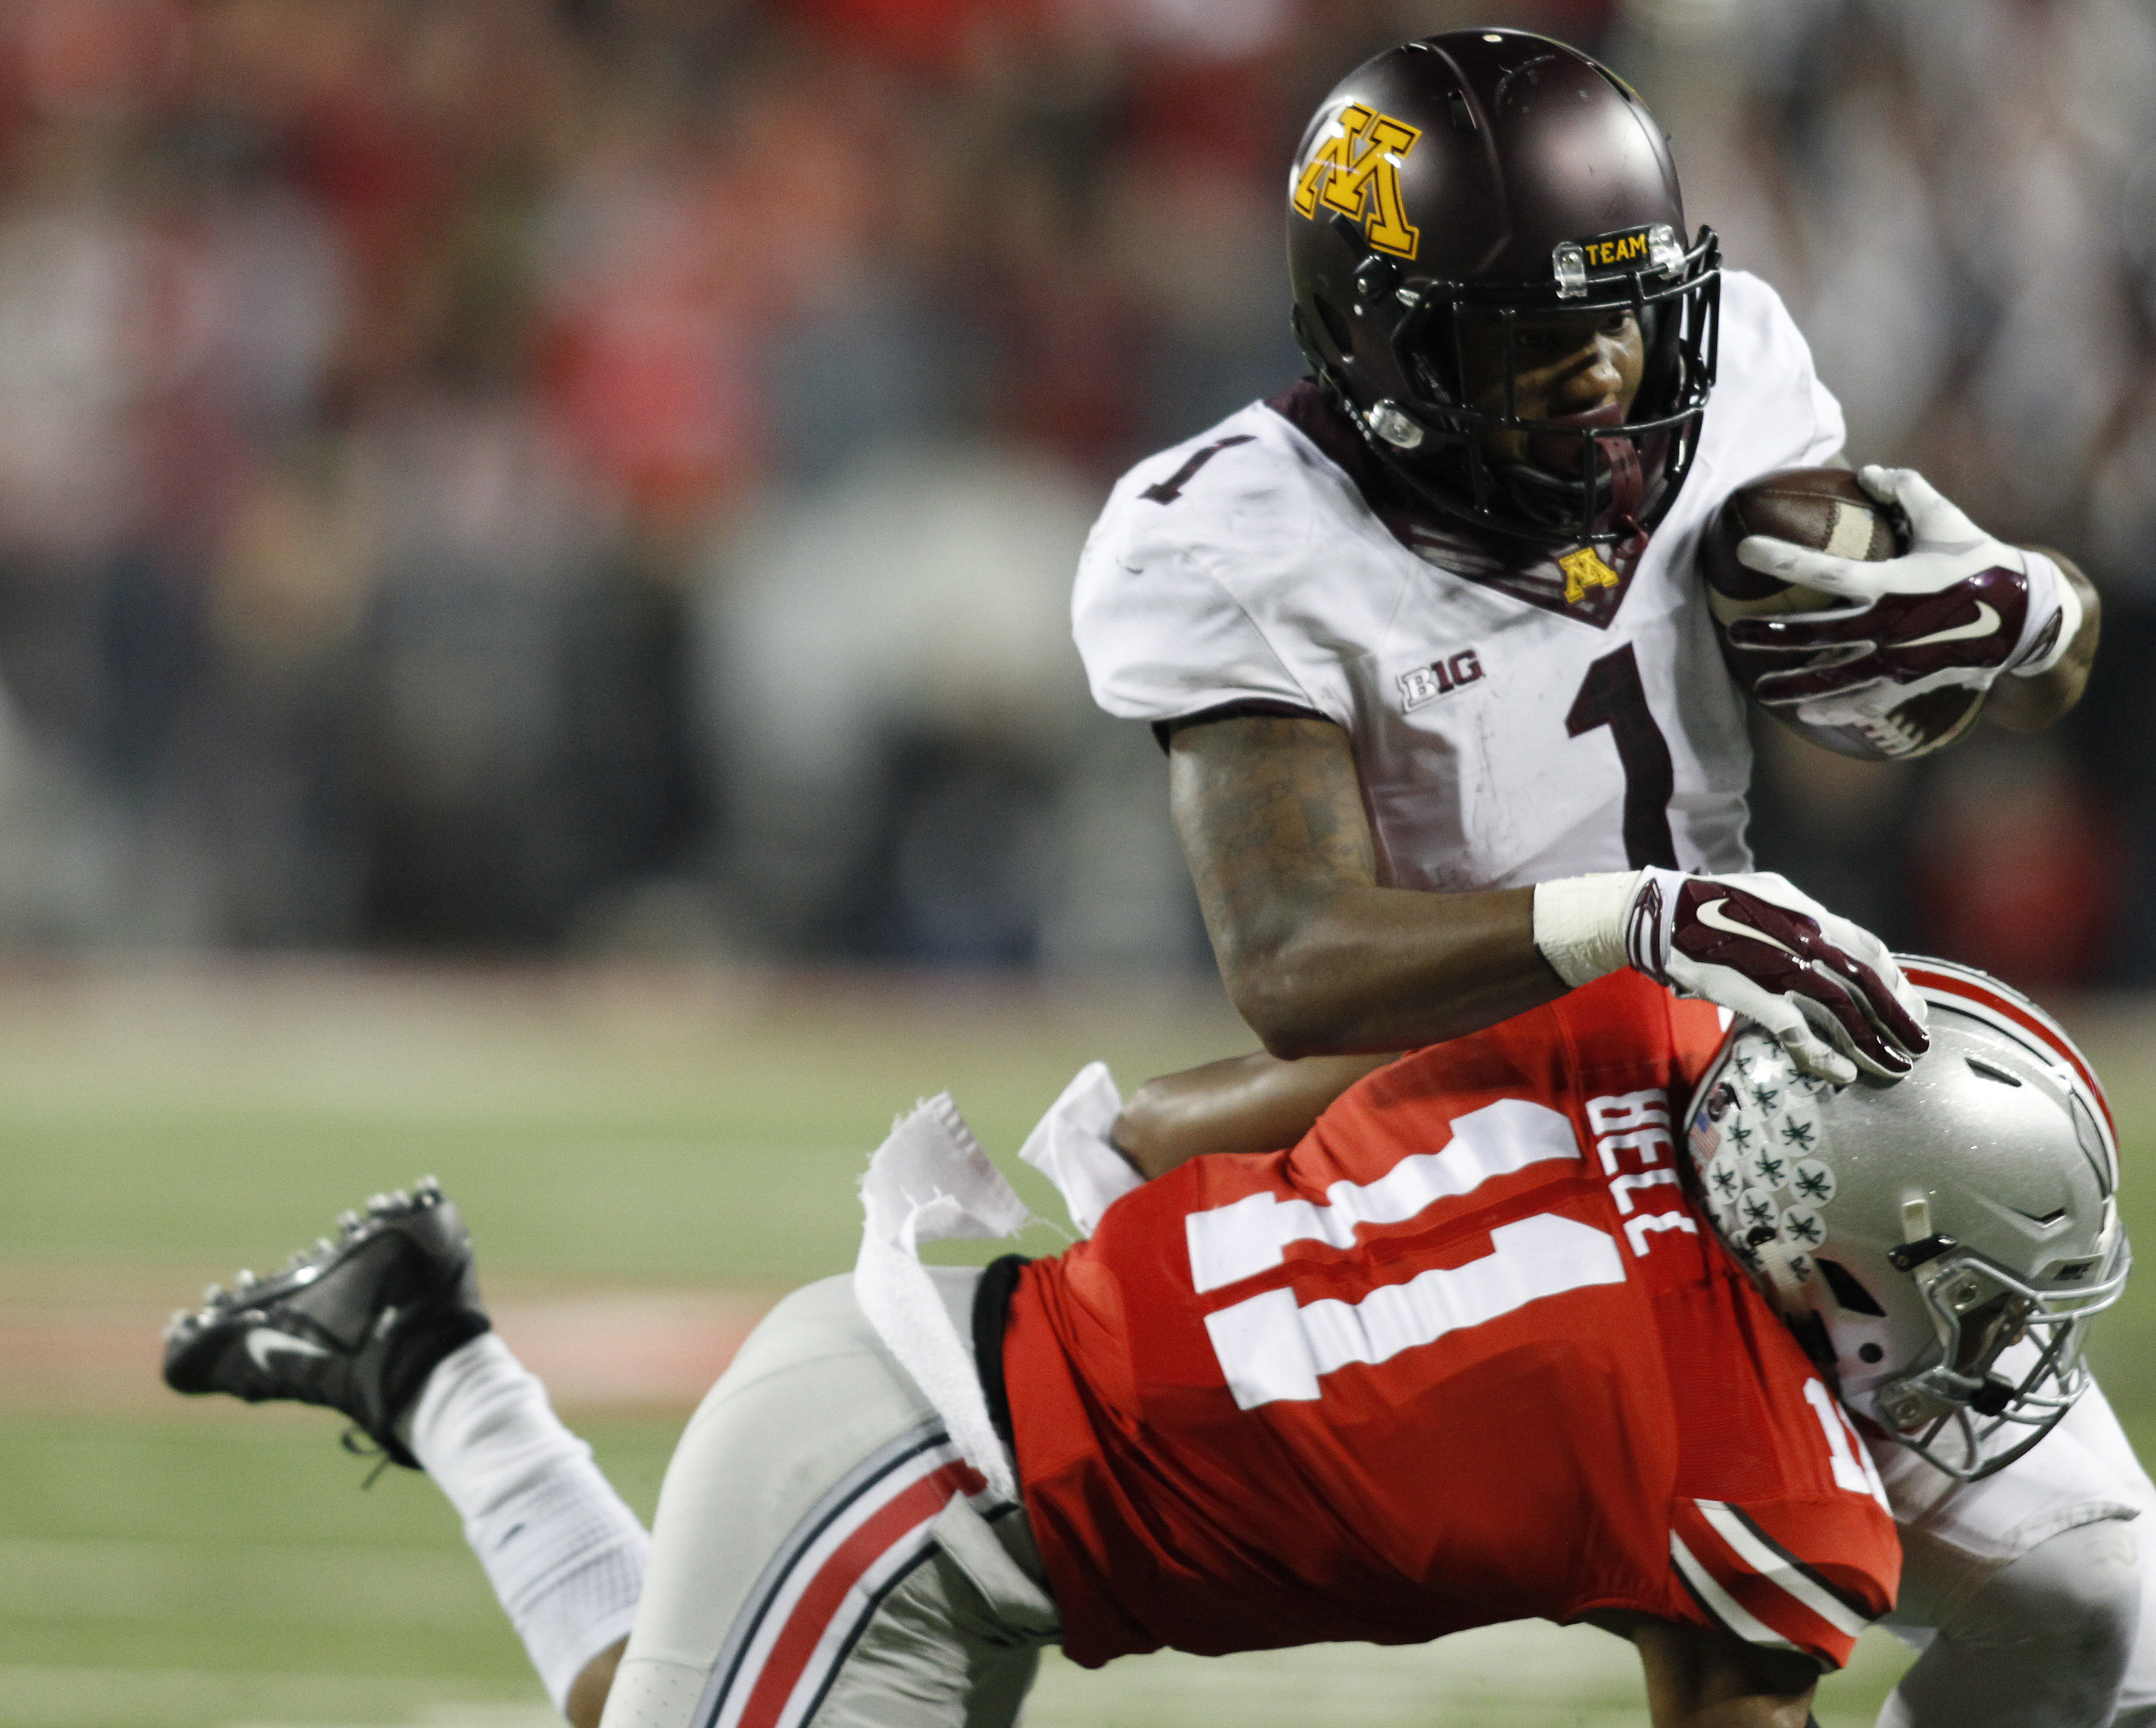 Minnesota wide receiver K.J. Maye, top, is tackled by Ohio State safety Vonn Bell during the fourth quarter of an NCAA college football game Saturday, Nov. 7, 2015, in Columbus, Ohio. Ohio State beat Minnesota 28-14. (AP Photo/Paul Vernon)